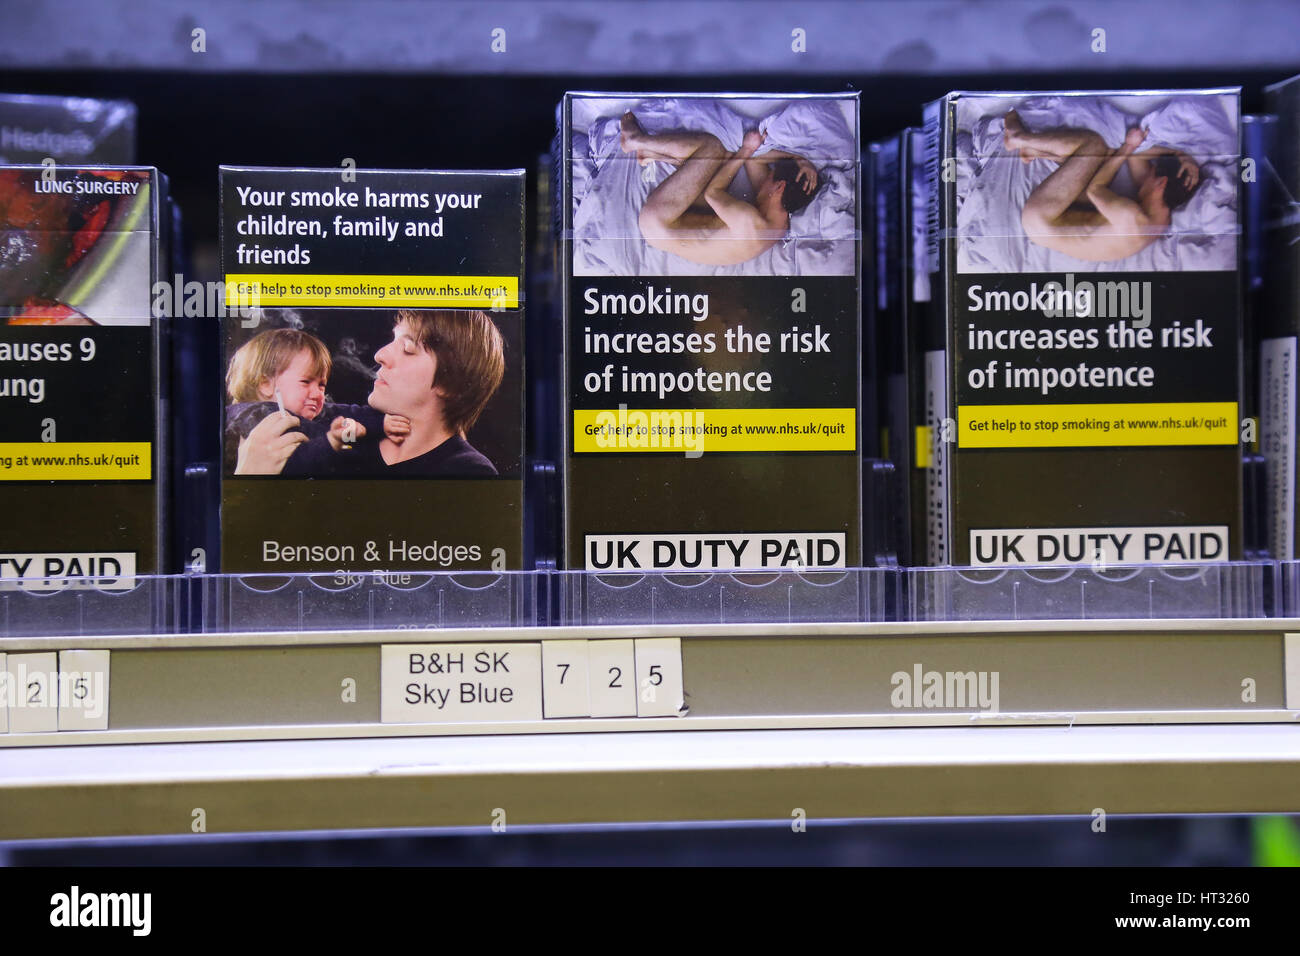 Buy Kent cigarettes Qatar